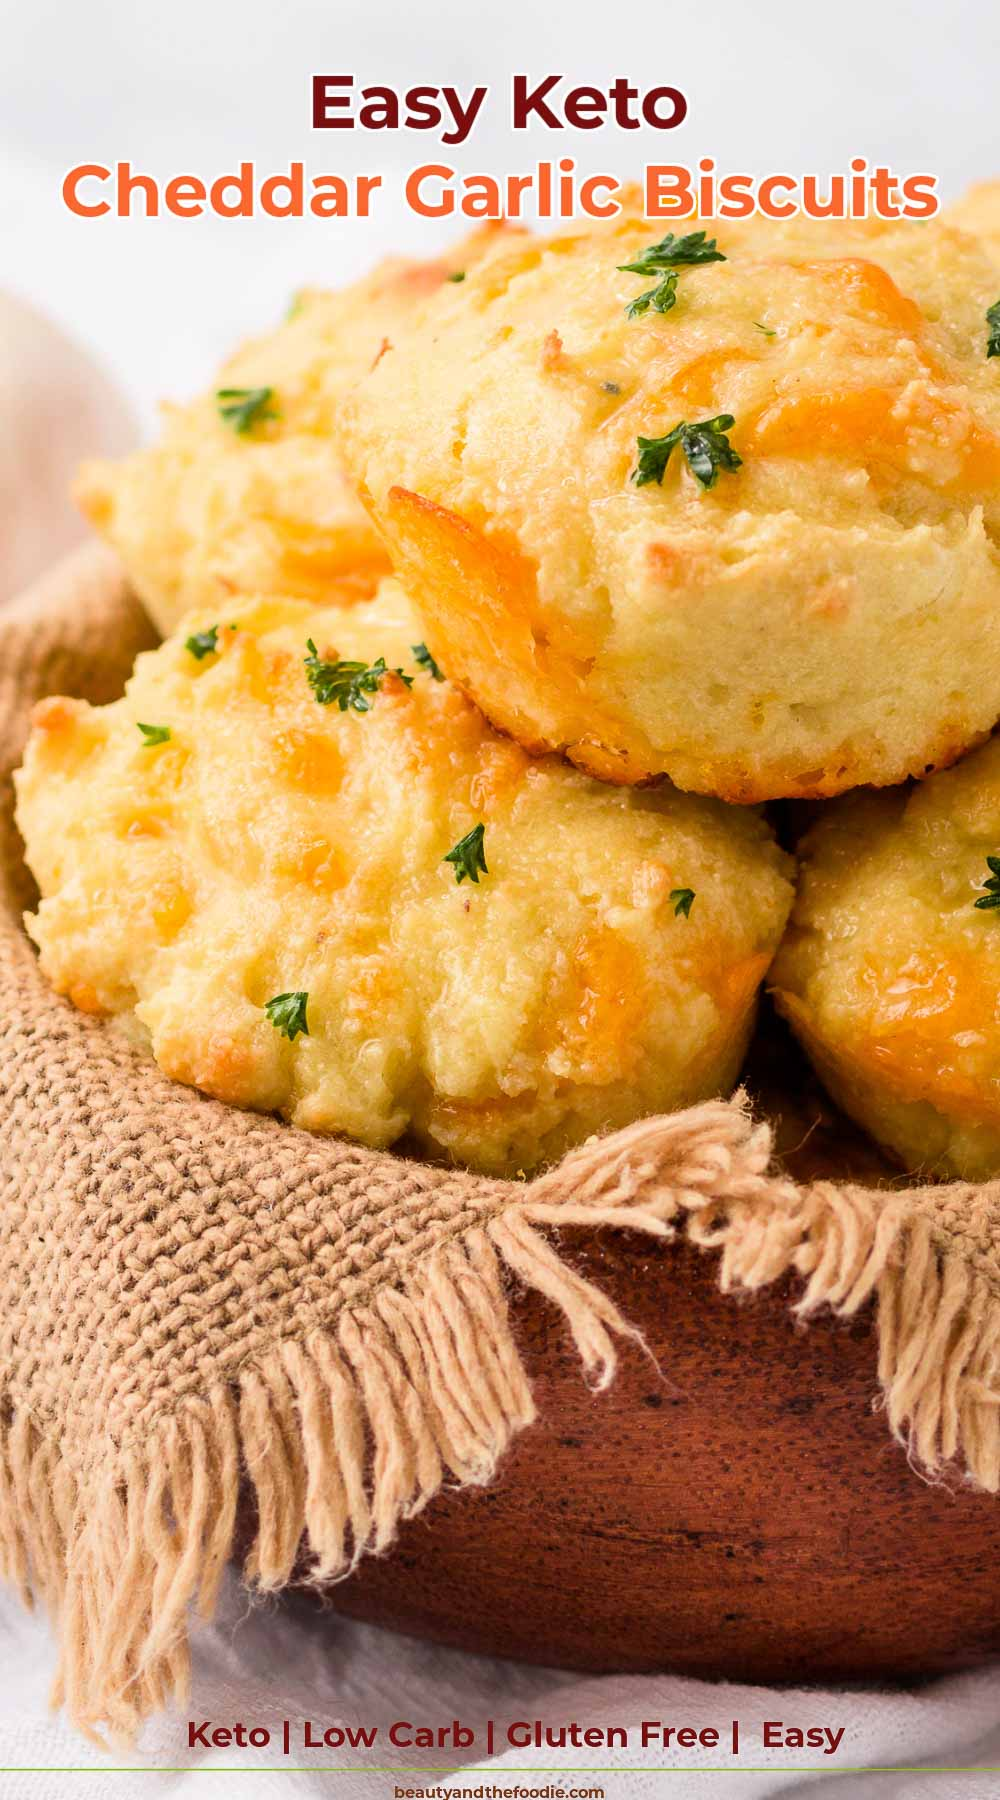 A basket of gluten free, low carb, garlic, cheddar biscuits